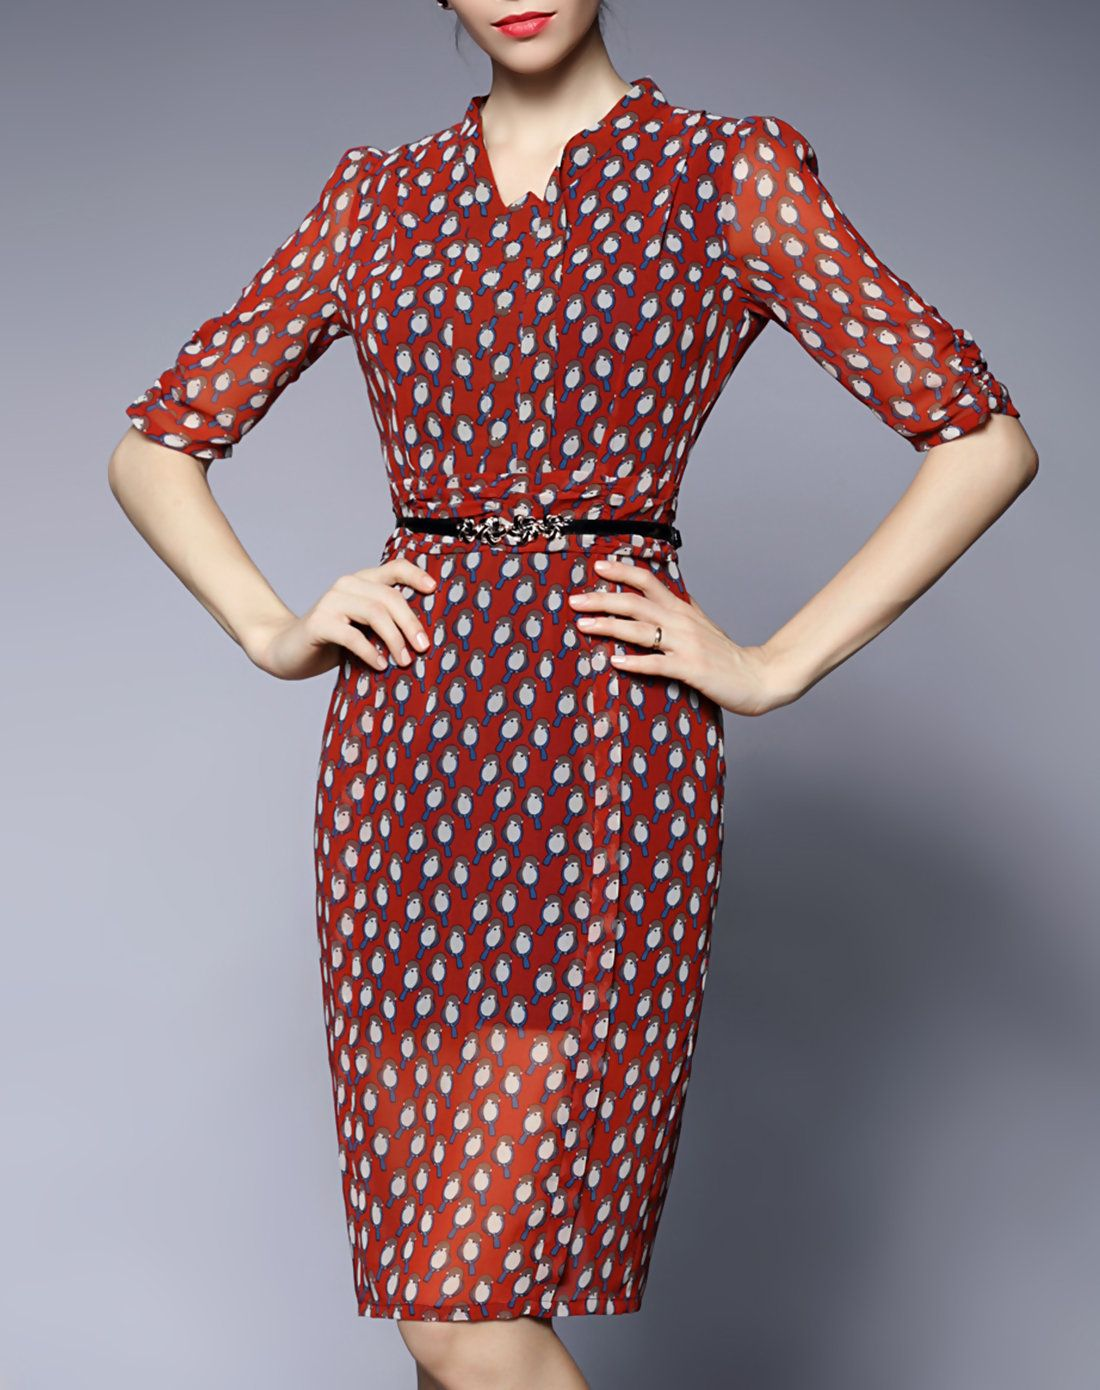 c2e617955bd34  AdoreWe  VIPme Sheath Dresses - GYALWANA Red Bird Pattern Print Chiffon  Belted Midi Dress - AdoreWe.com